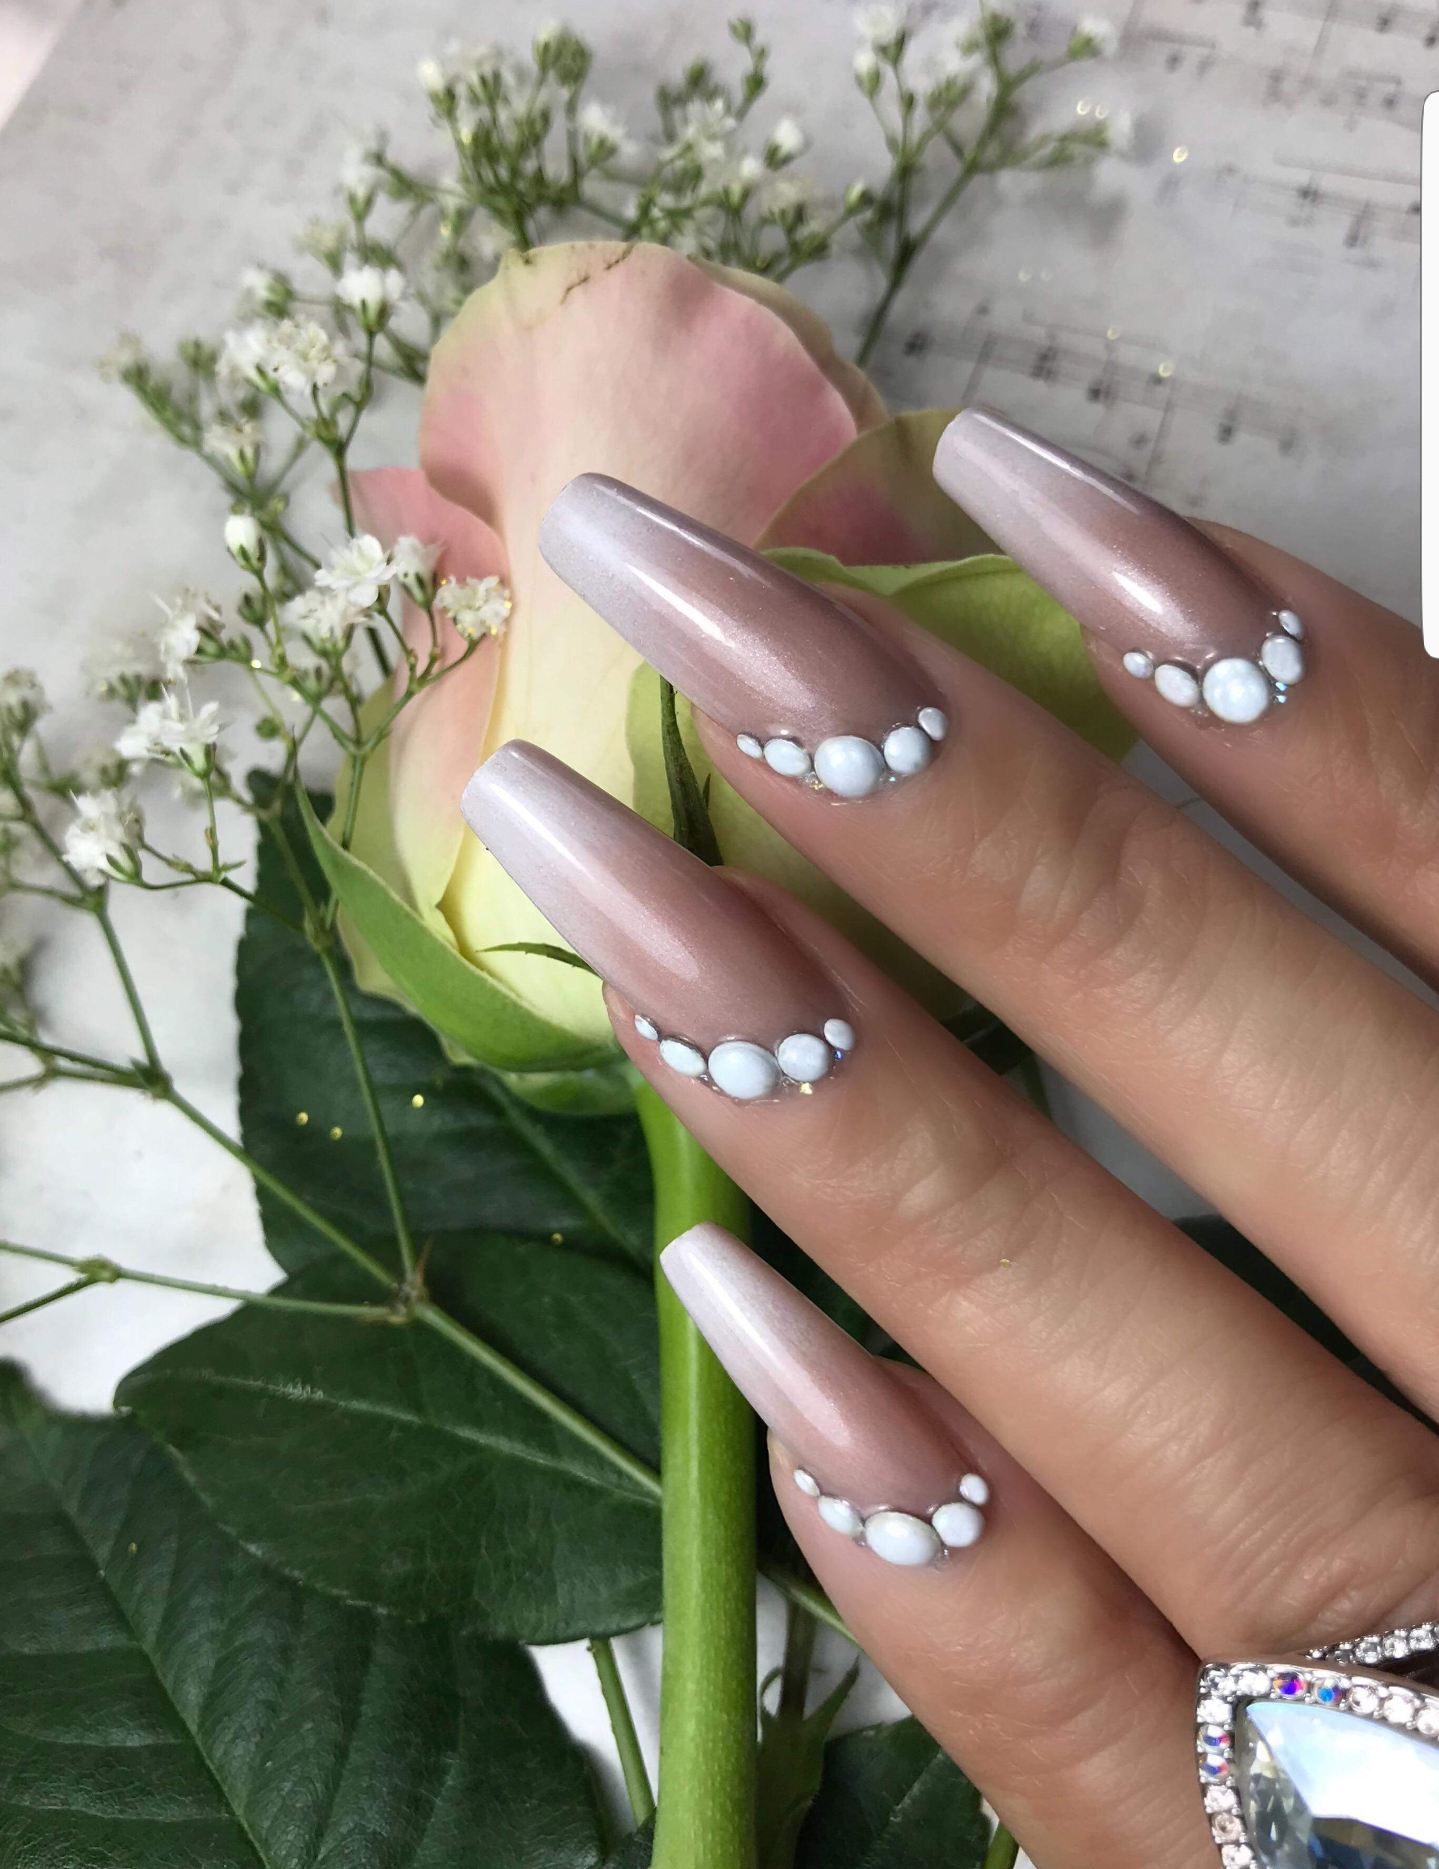 Workshop Salon Nail Shapes Door Tracey Lee Op 4 April 2018